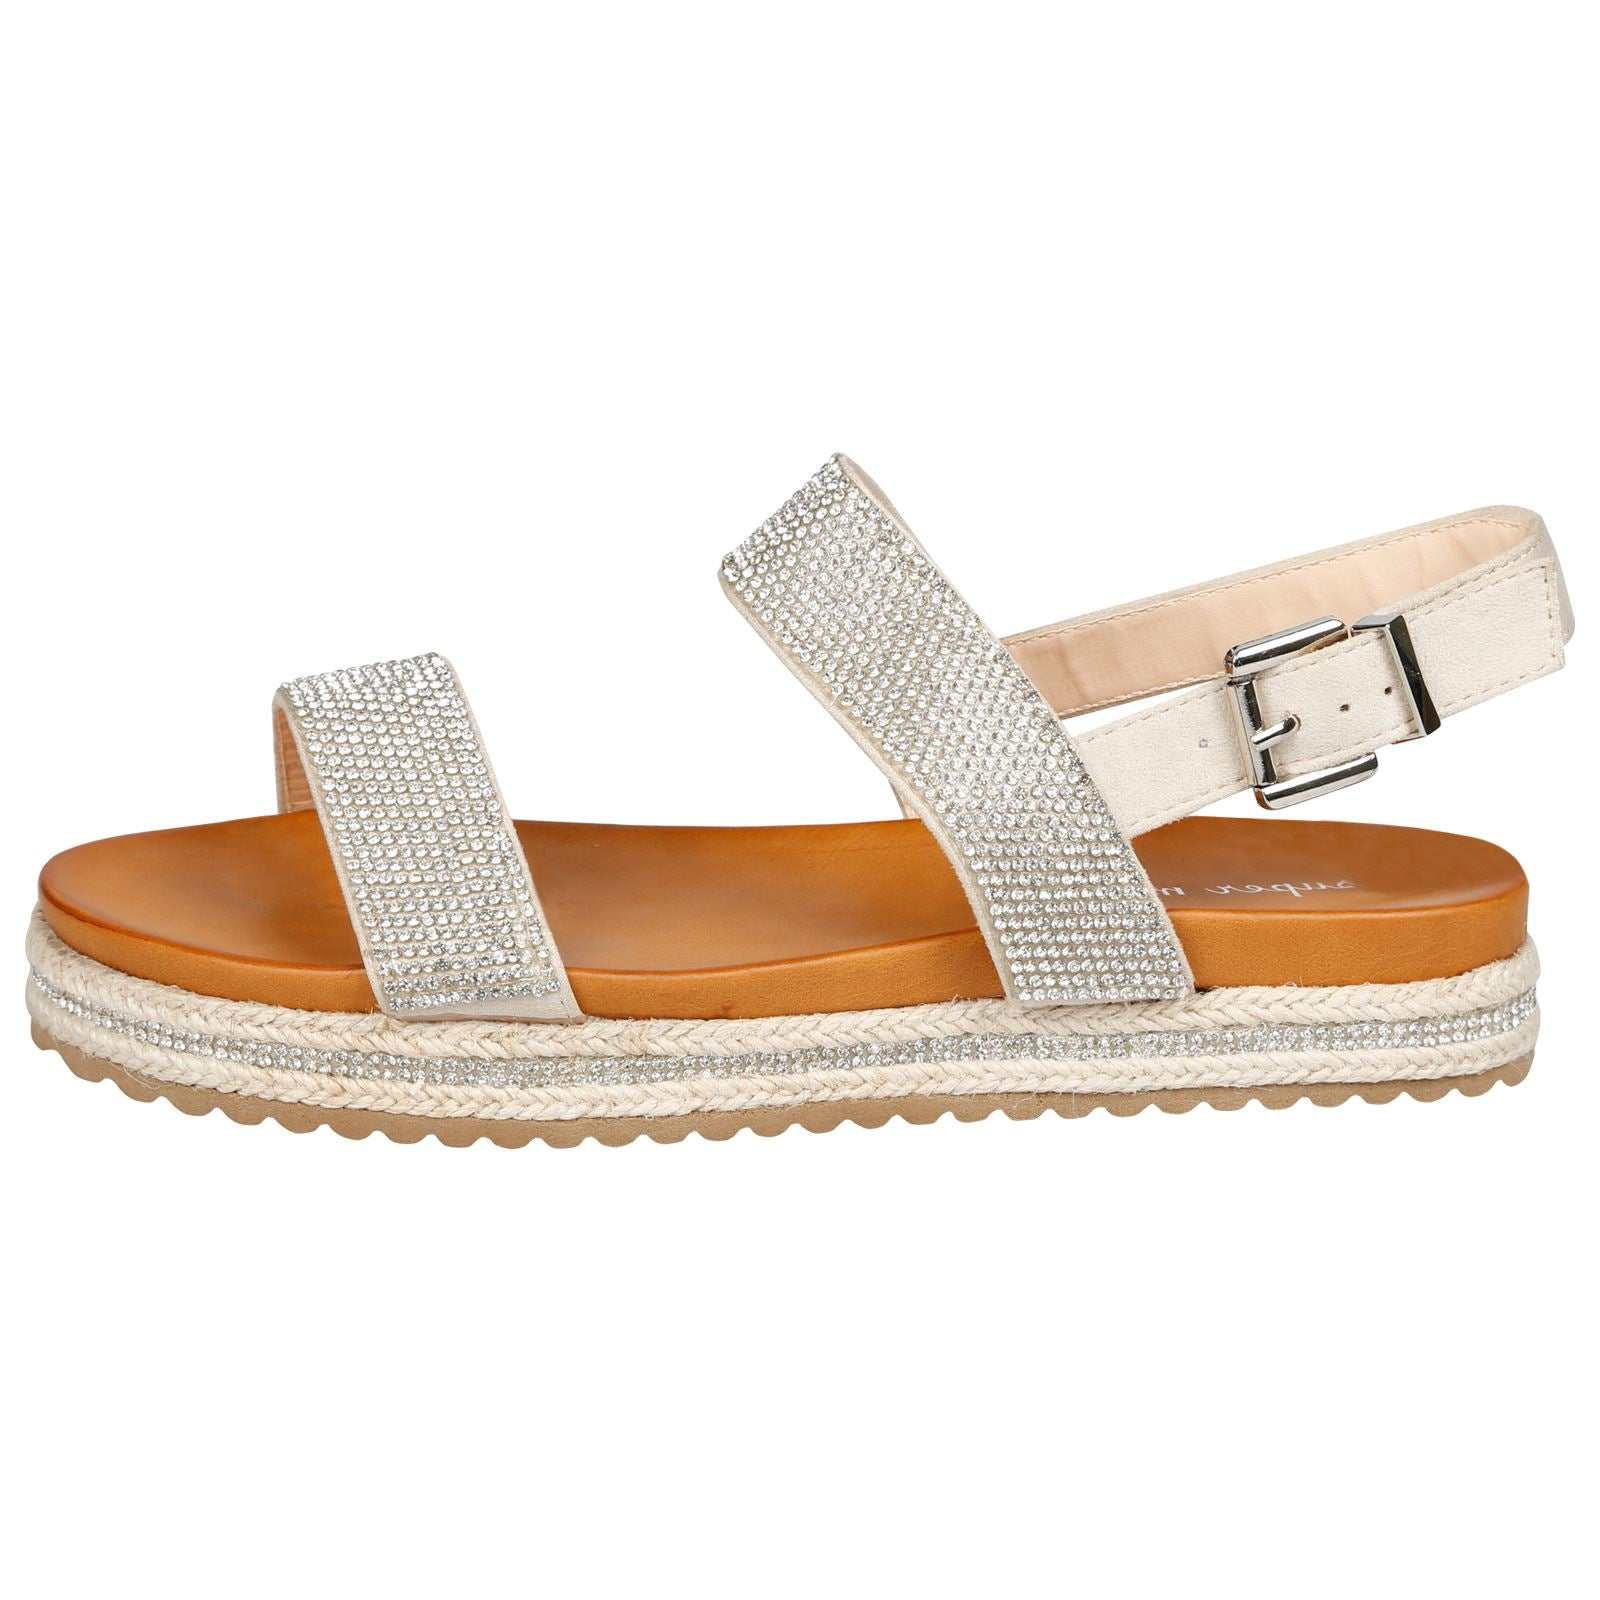 Kimora Diamante Espadrille Sandals in Beige Faux Suede